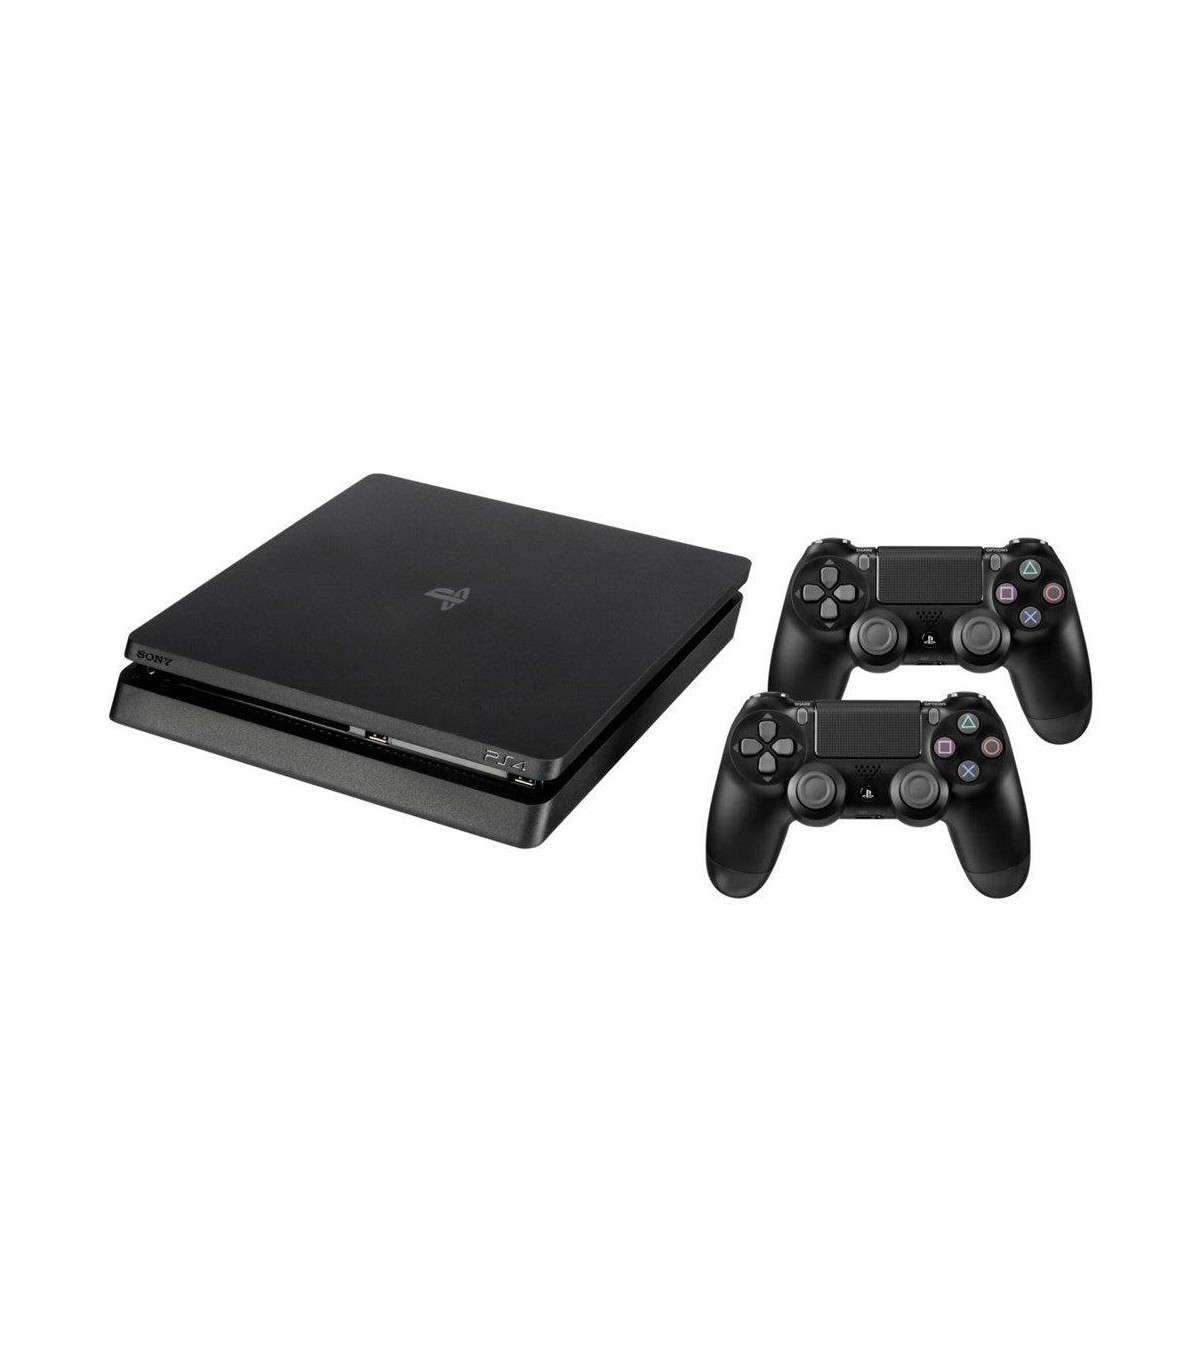 c632d4d087d PLAYSTATION 4 CONSOLE 500GB/SLIM BLACK 2 X DUALSHOCK SONY